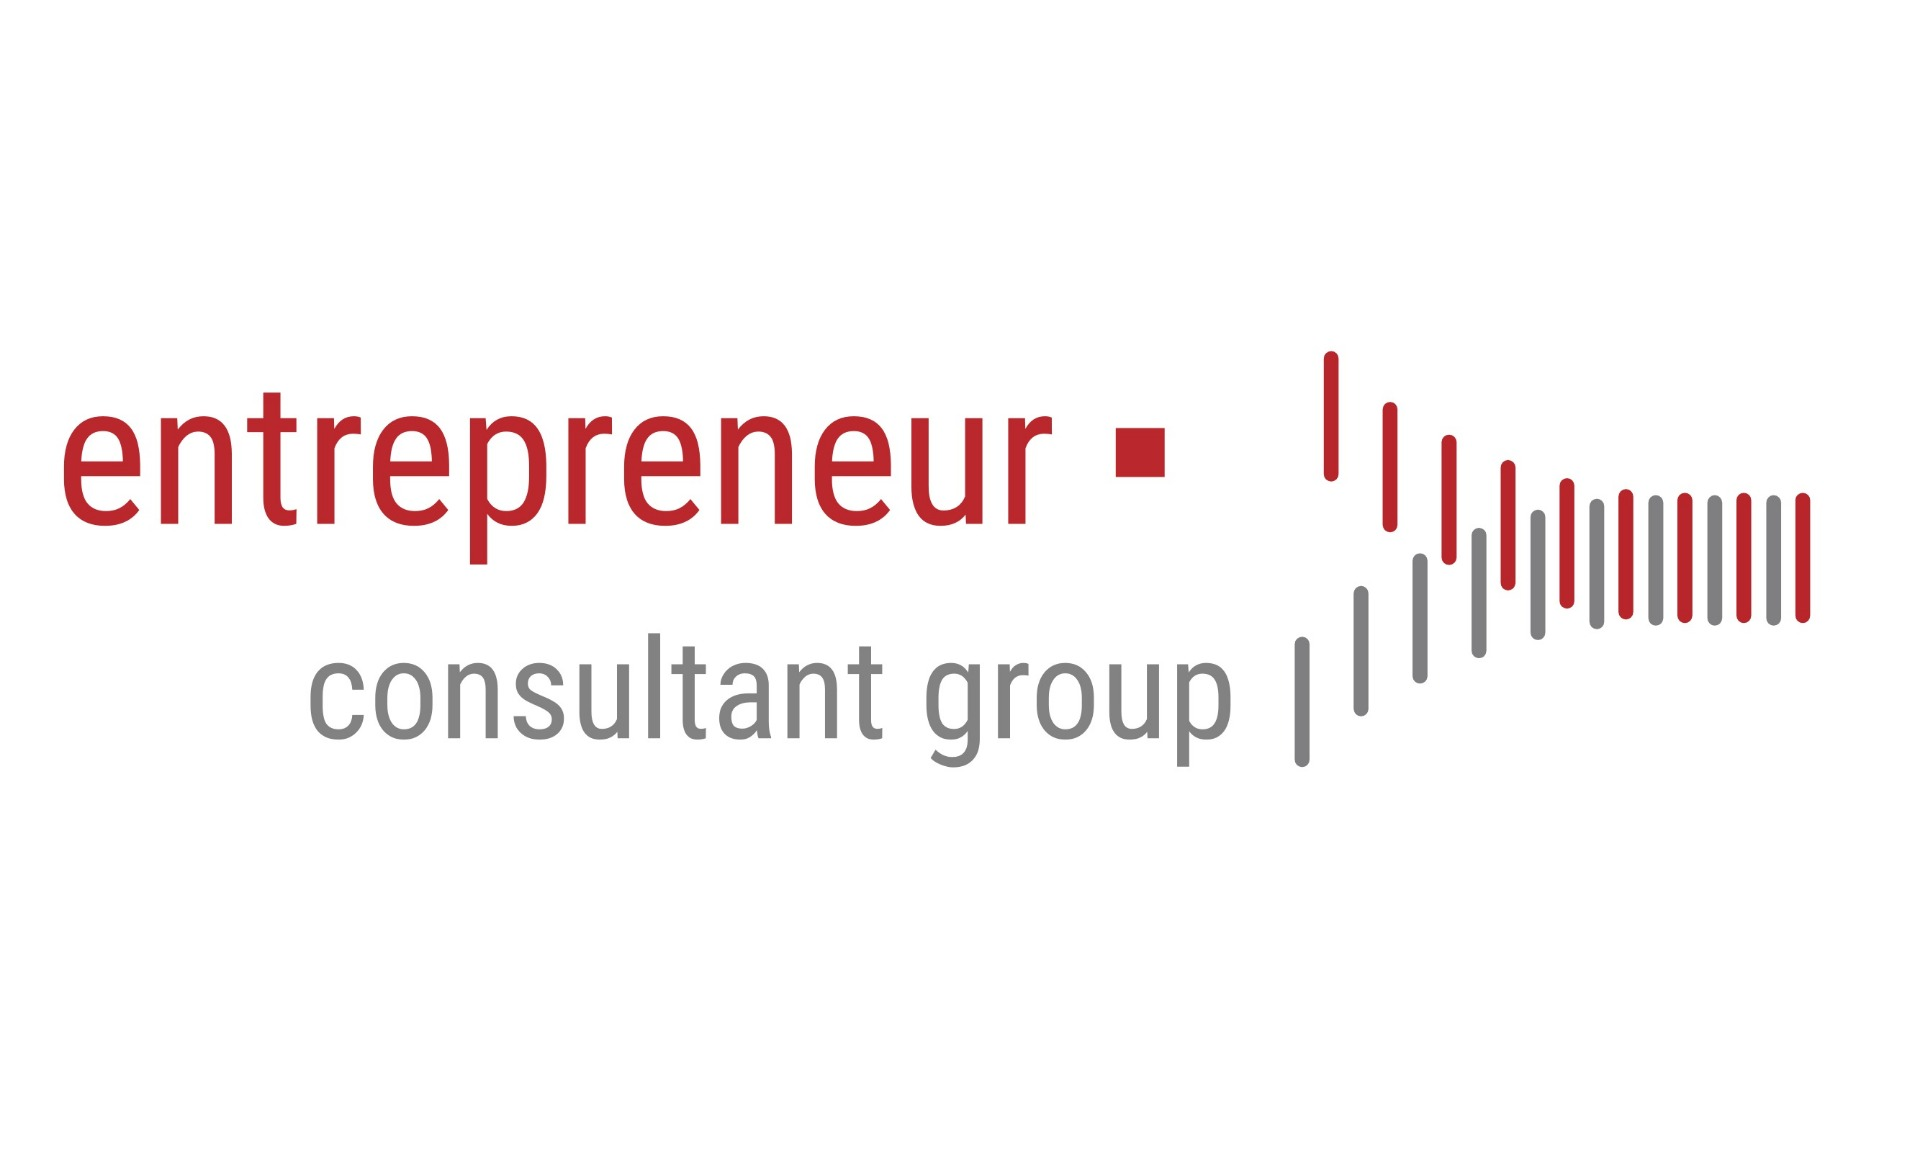 entrepreneur consultant group